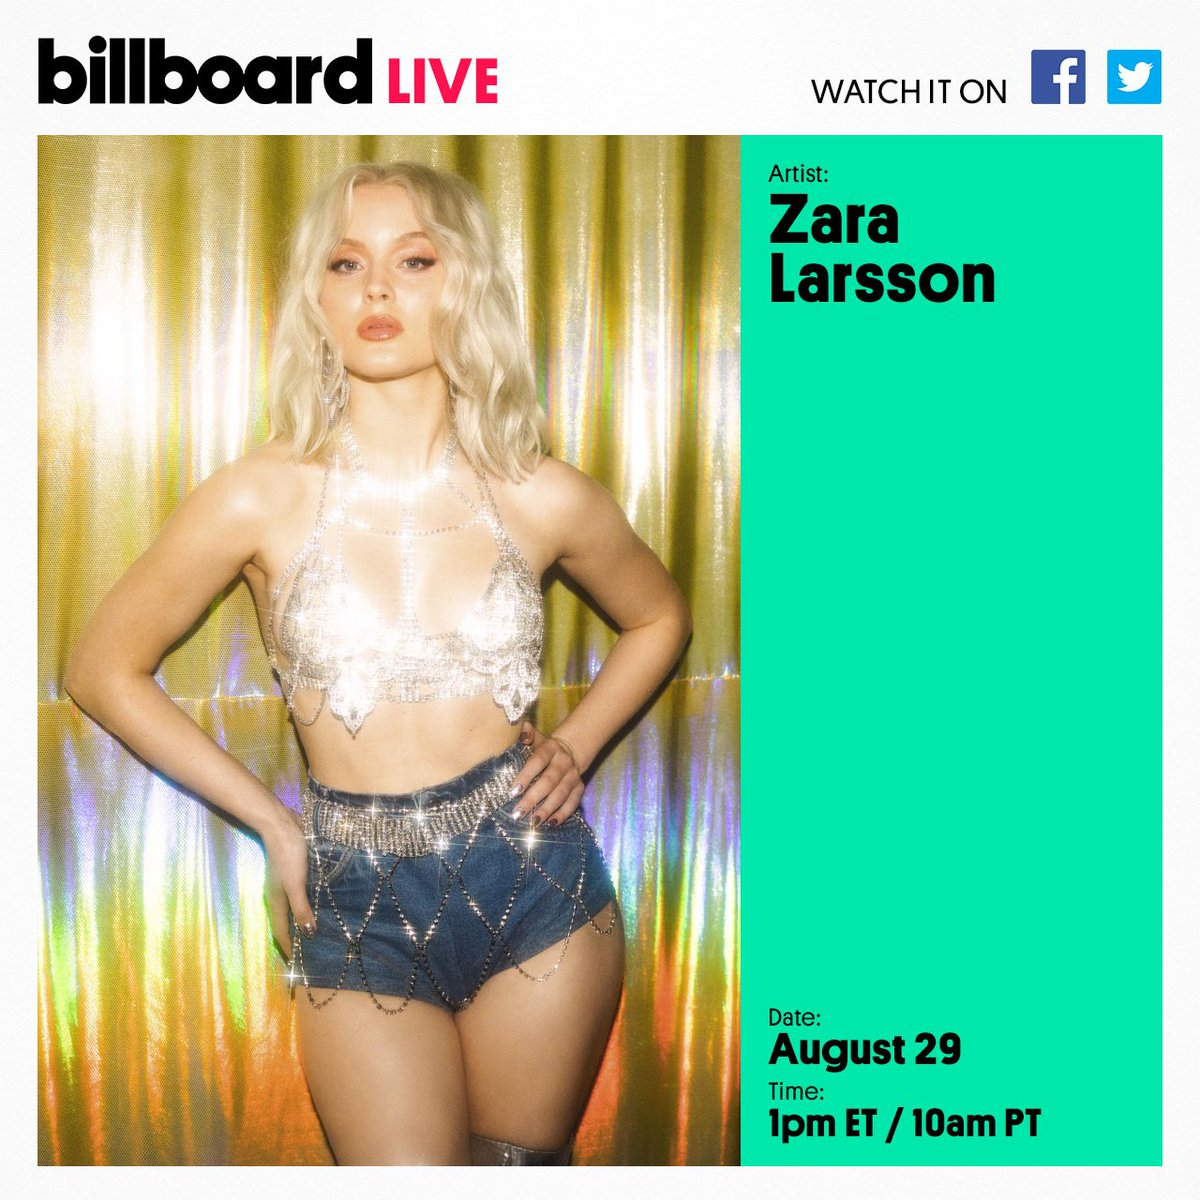 .@zaralarsson is stopping by for a Billboard Live performance followed by a live Q&A! Submit your questions using #BillboardLive and we might ask them on air. 💕